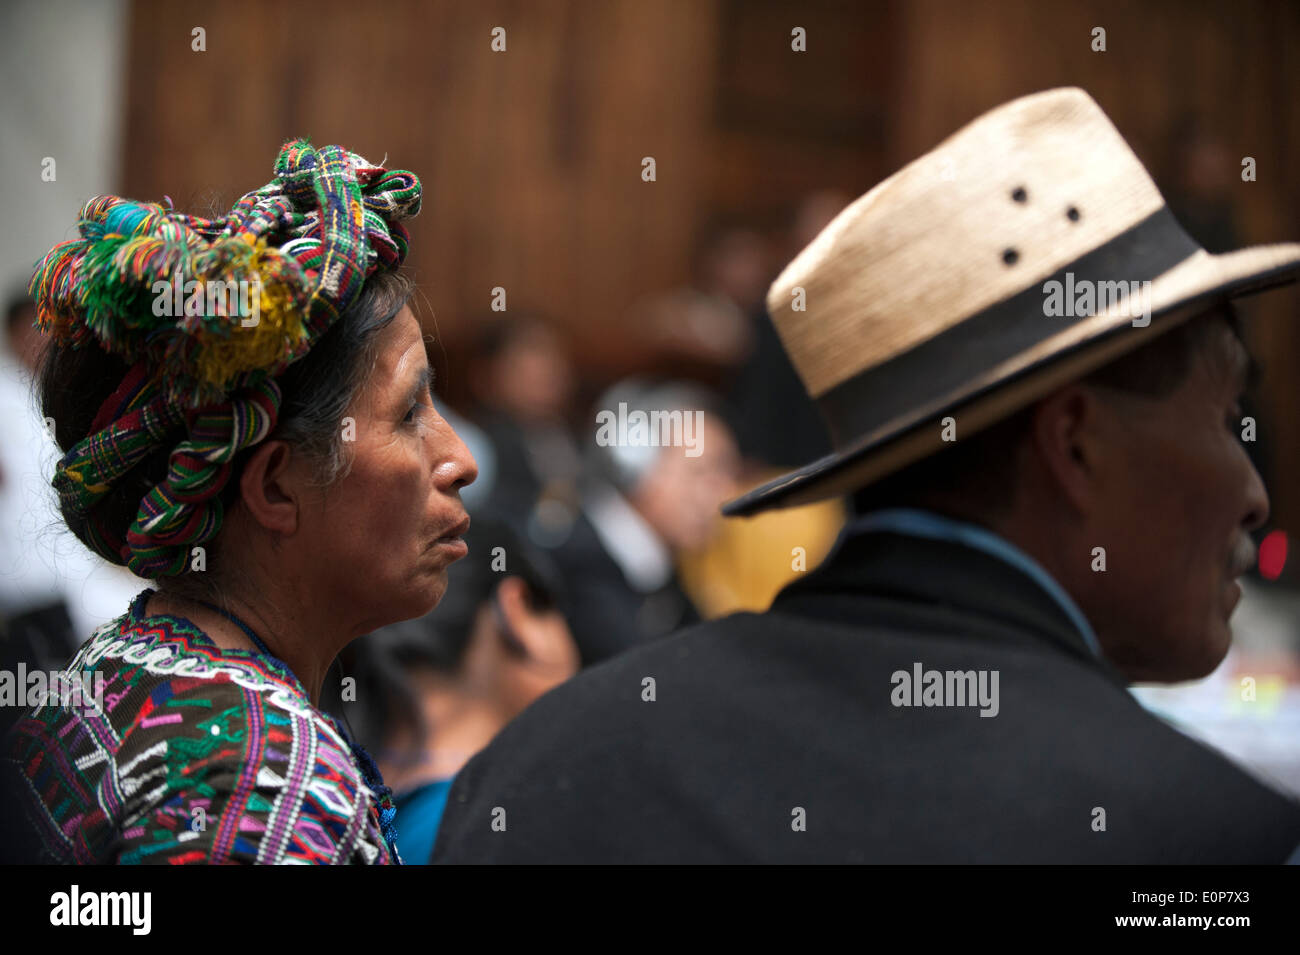 Ex-Guatemalan dictator Rios Montt goes on trial for Genocide, Guatemala City, Guatemala. - Stock Image